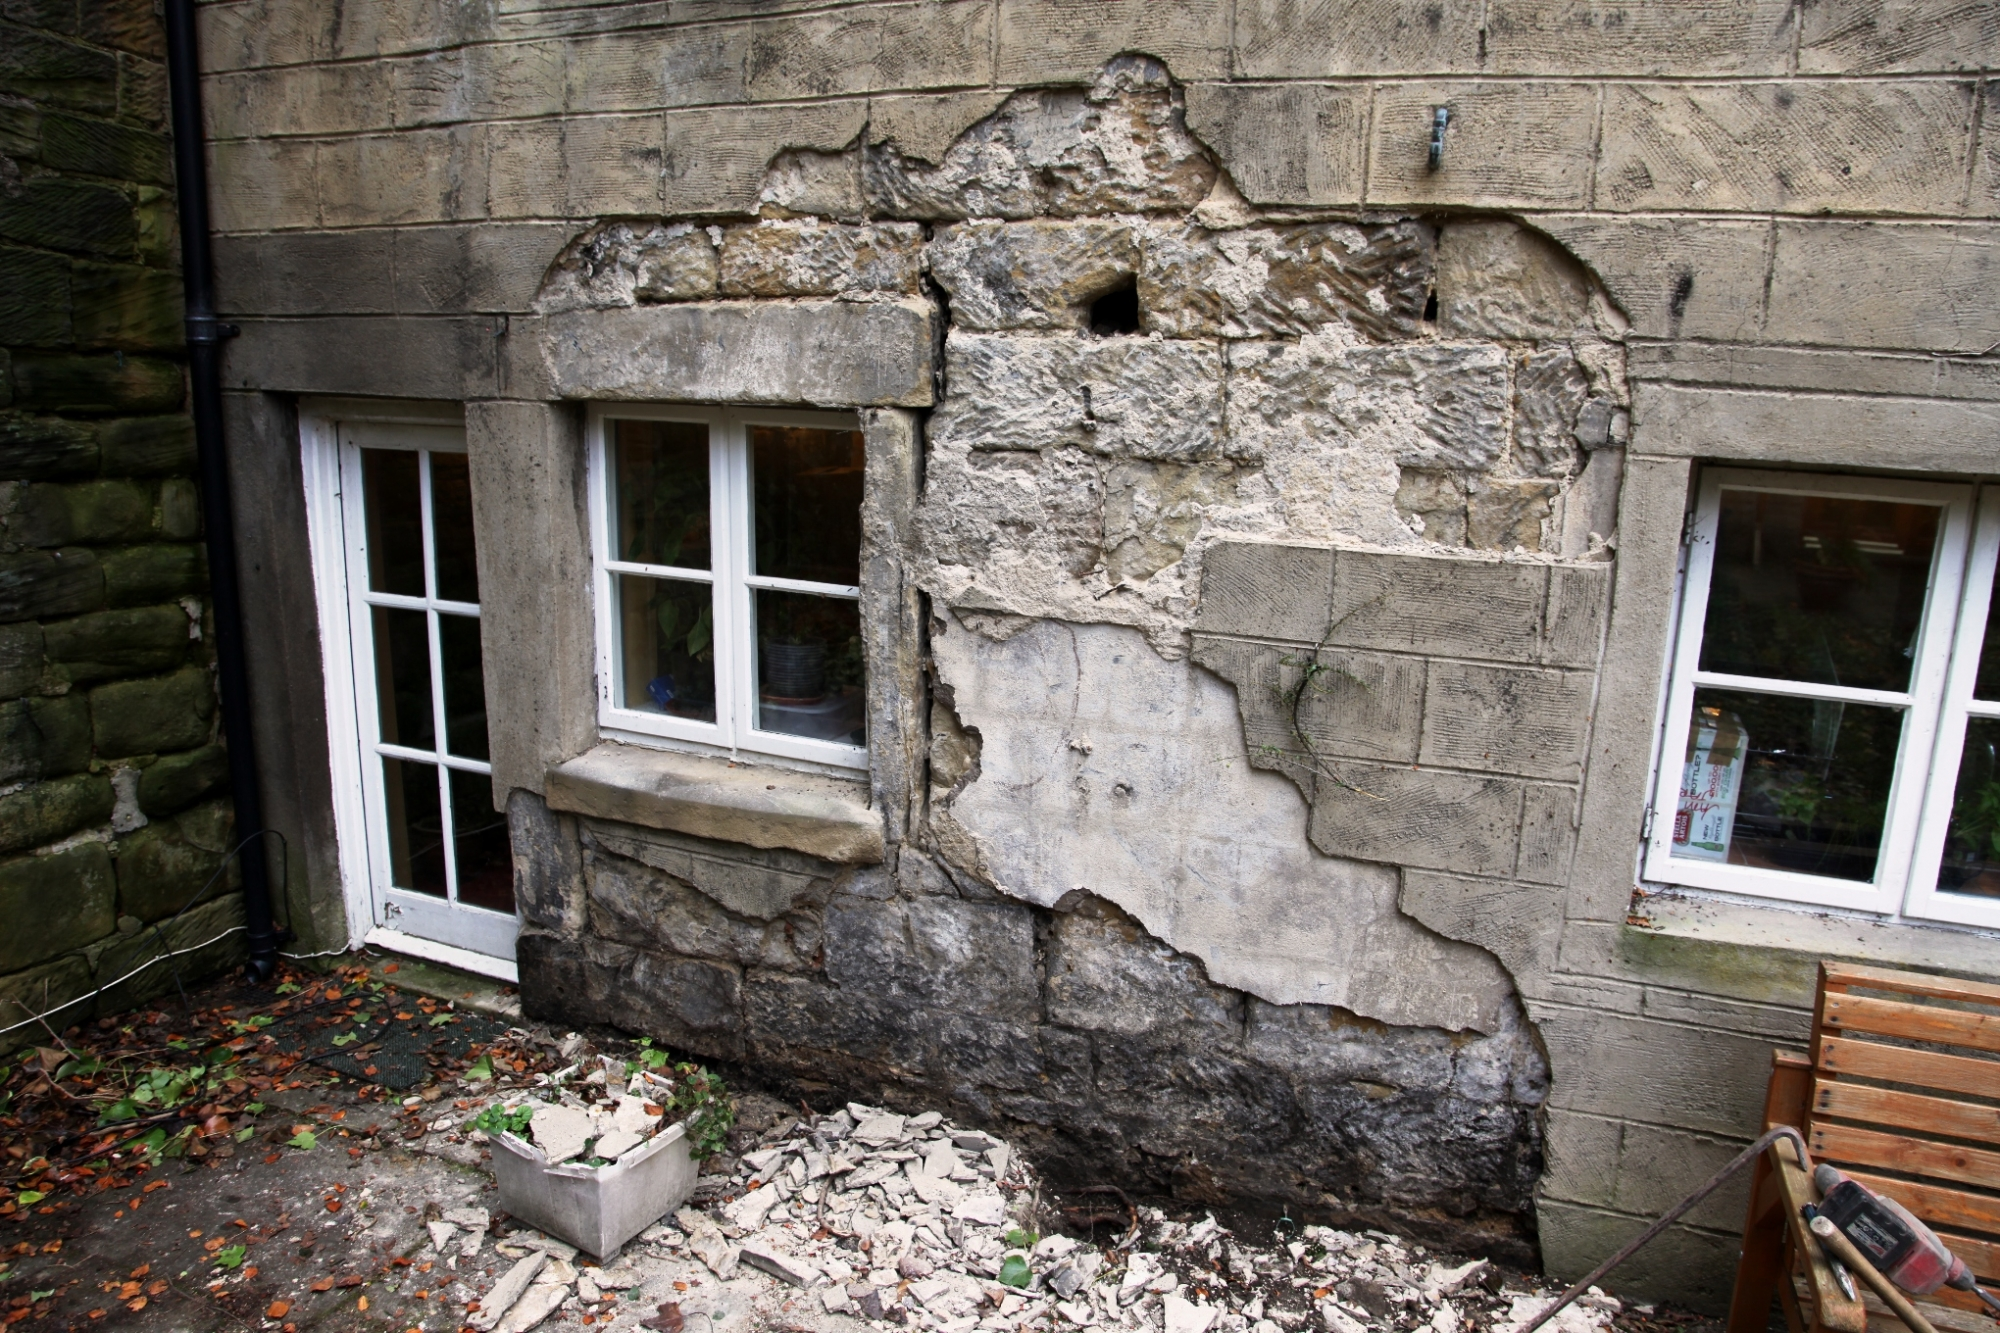 damp problems caused by cement render trapping water into walls